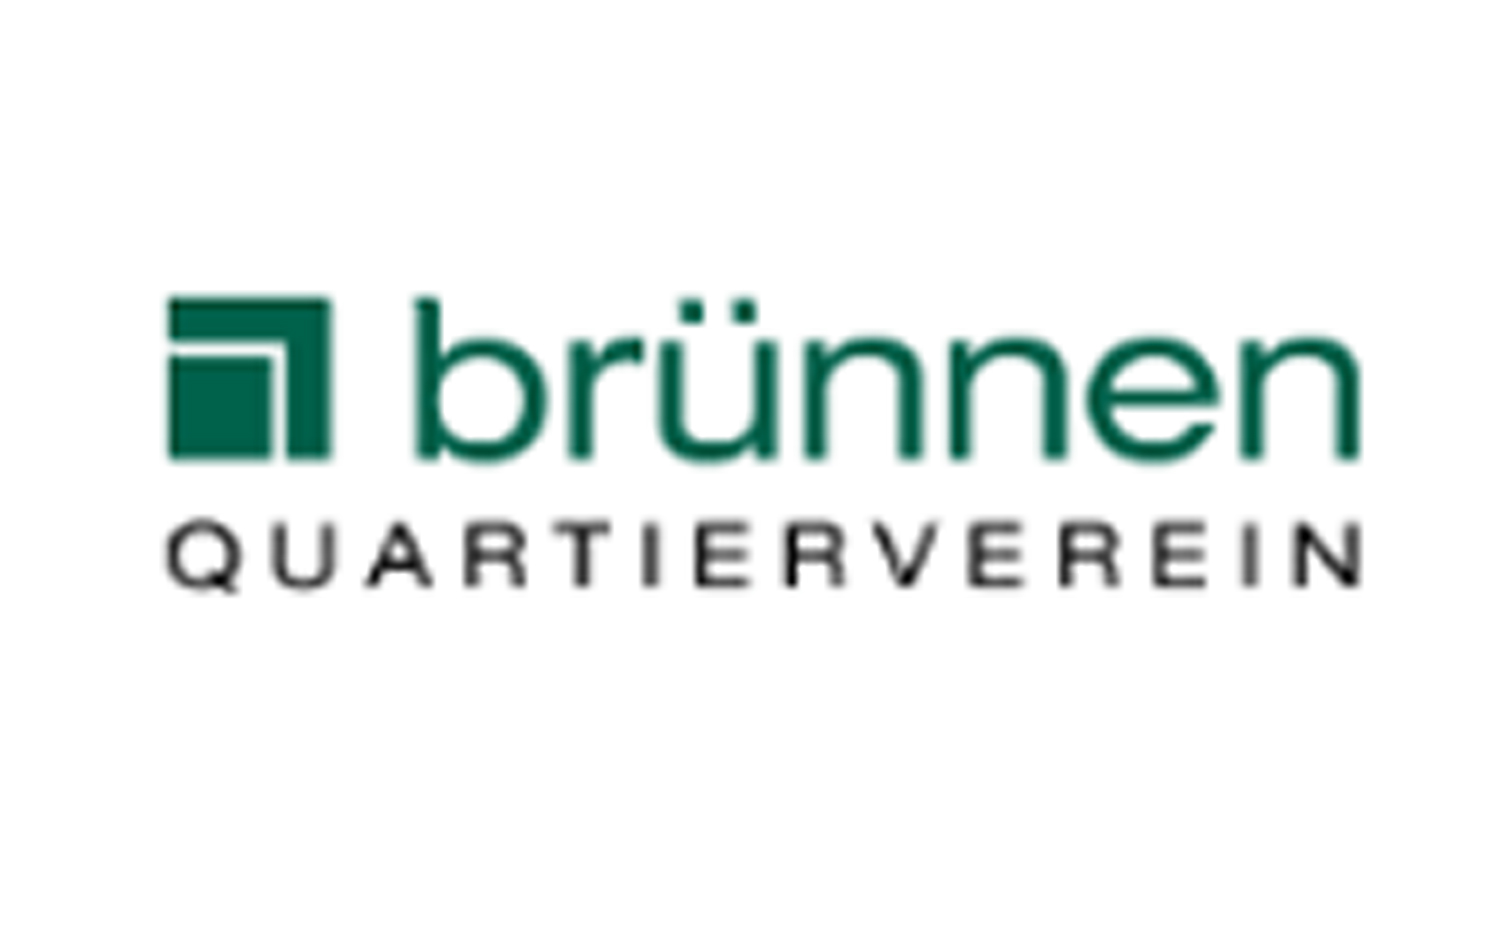 Logo Quartierverein Bruennen